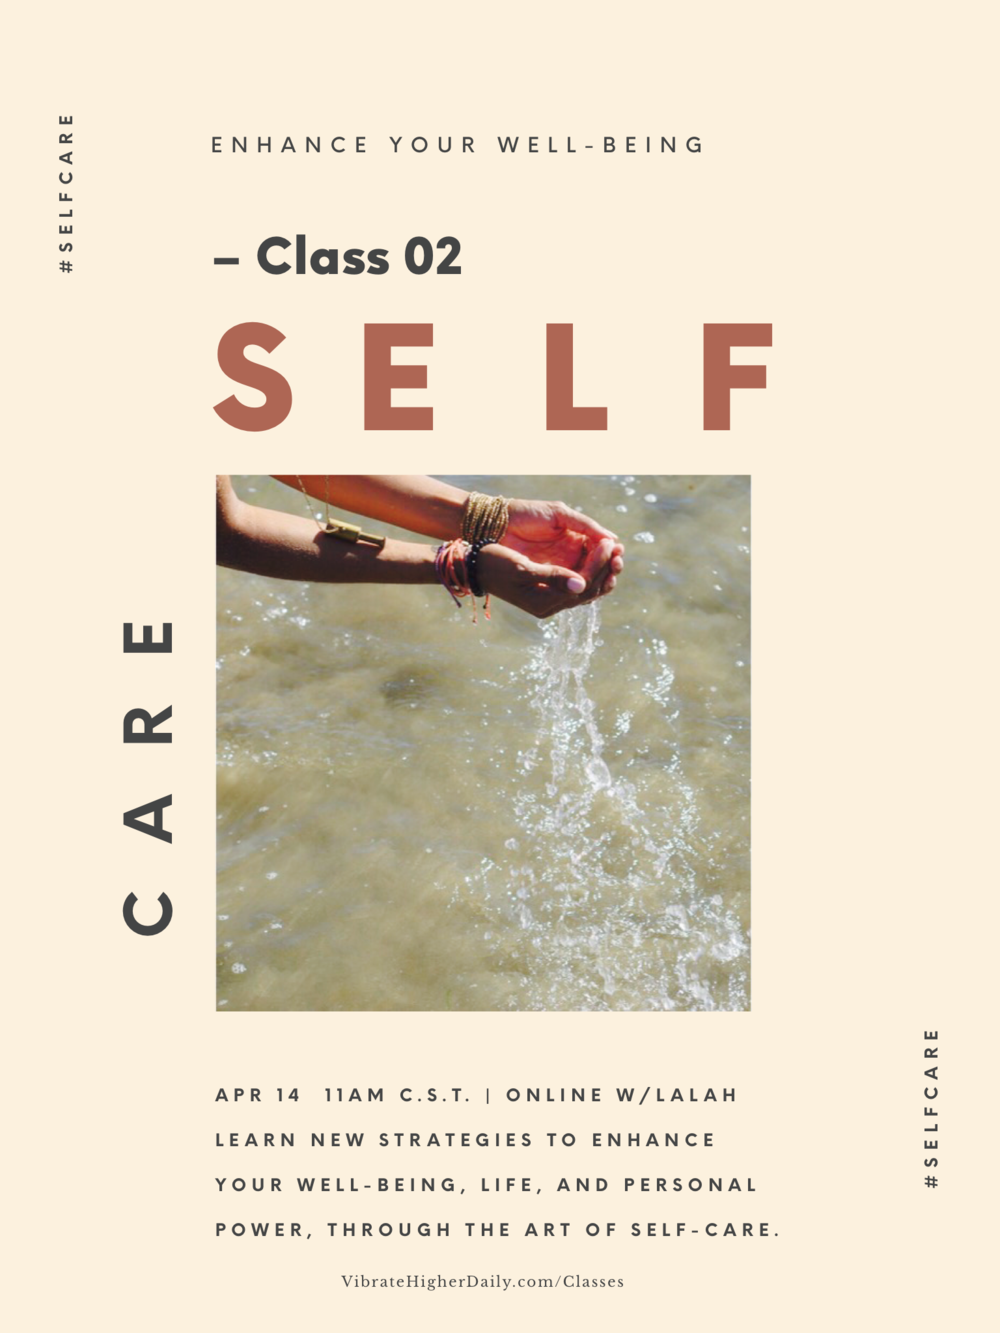 Self-Care - Learn the essentials and more. Discover strategies to restore, nurture, soothe, and enhance your well-being: mind, body, spirit, and amp up personal power, through this Self-Care class.$15